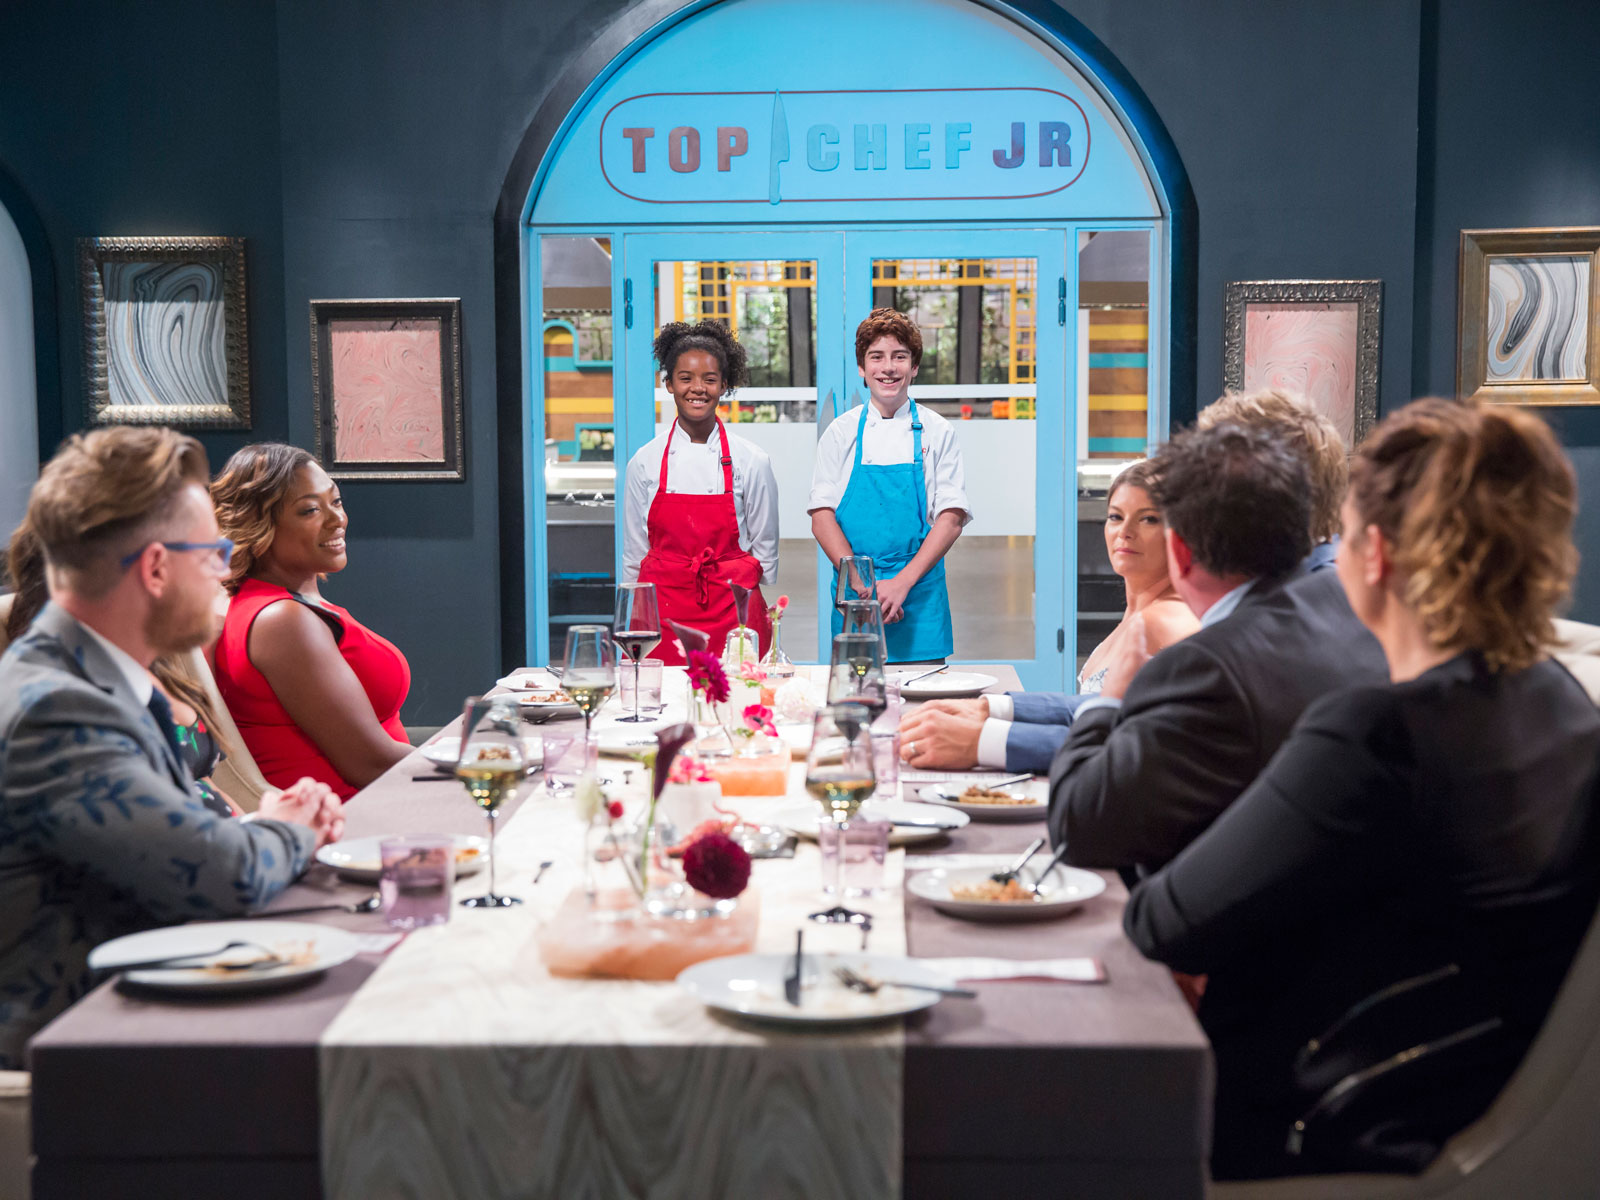 Top Chef Jr. Finalists